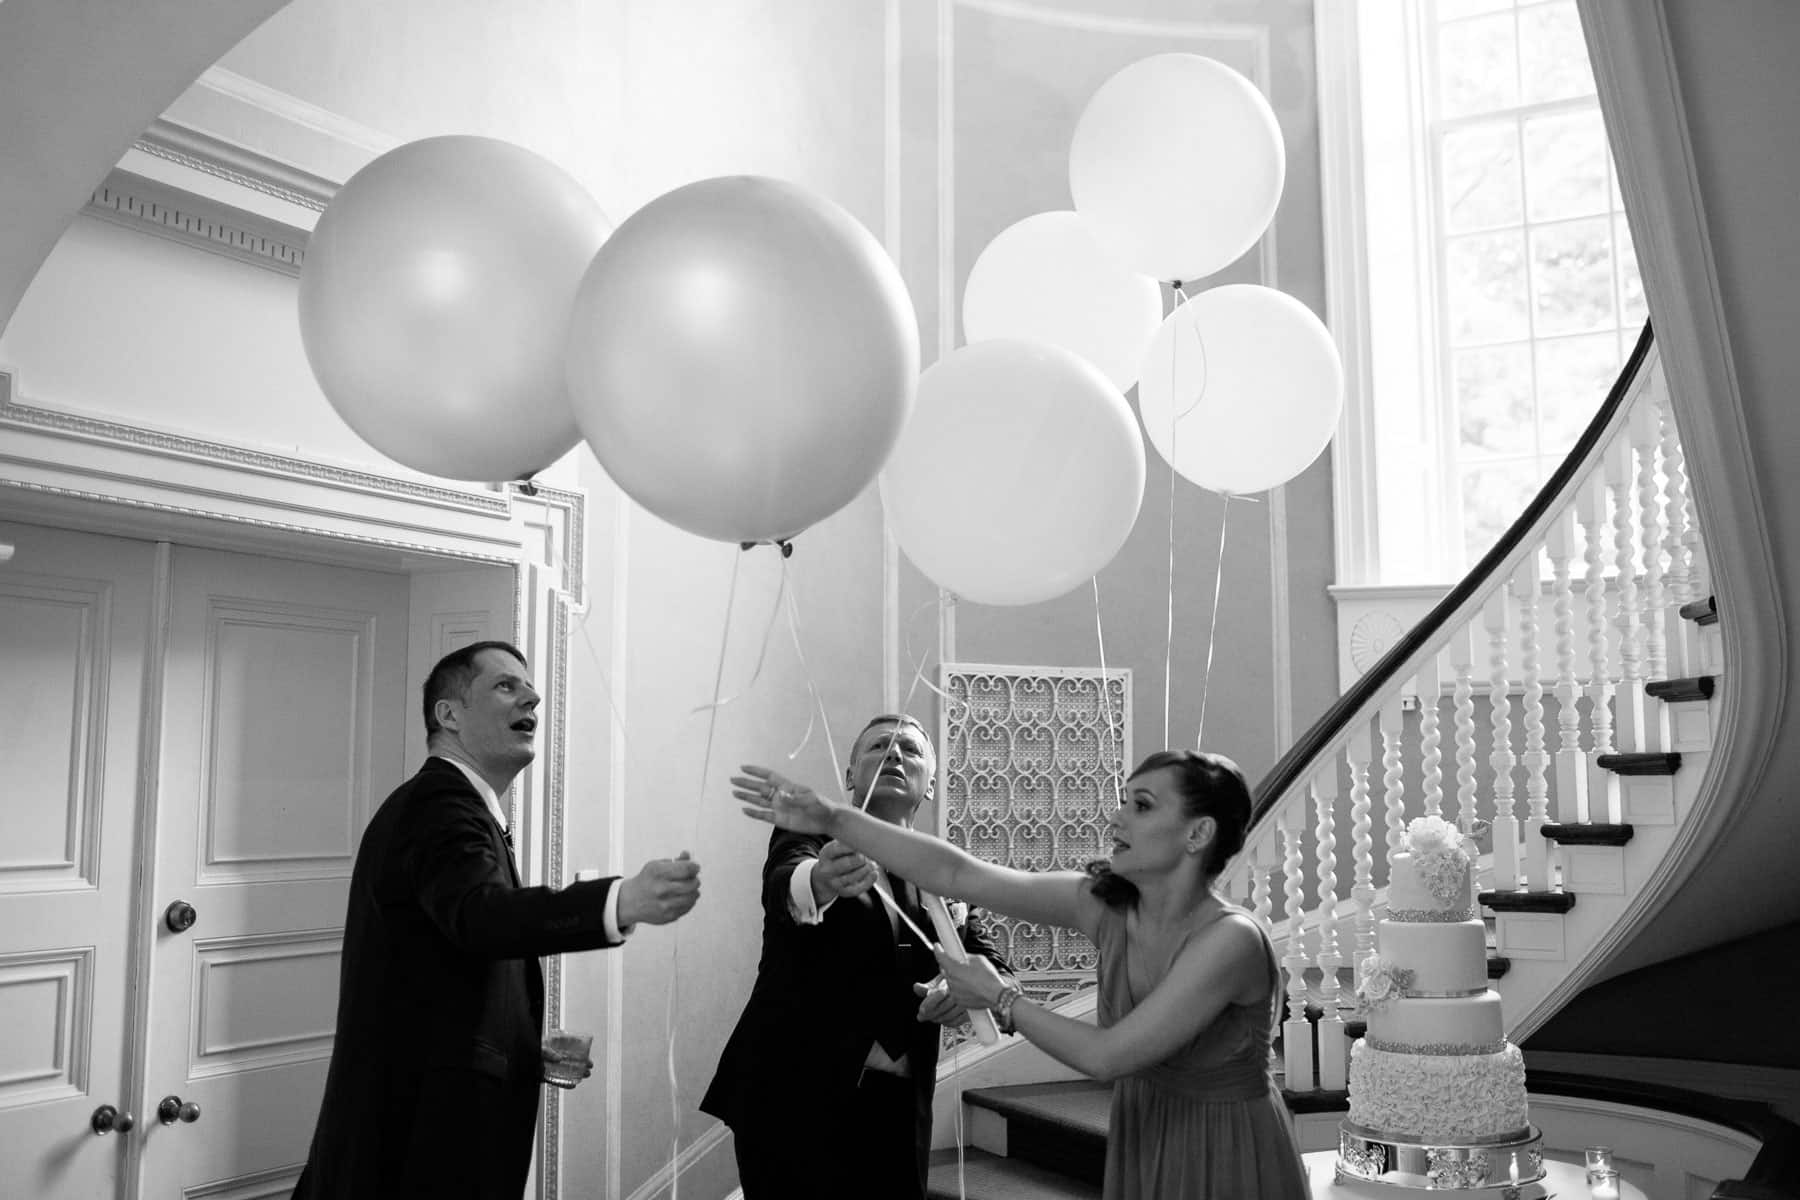 Several guest wrangling helium inflated balloons near wedding cake at McClain House, Estates of Sunnybrook.